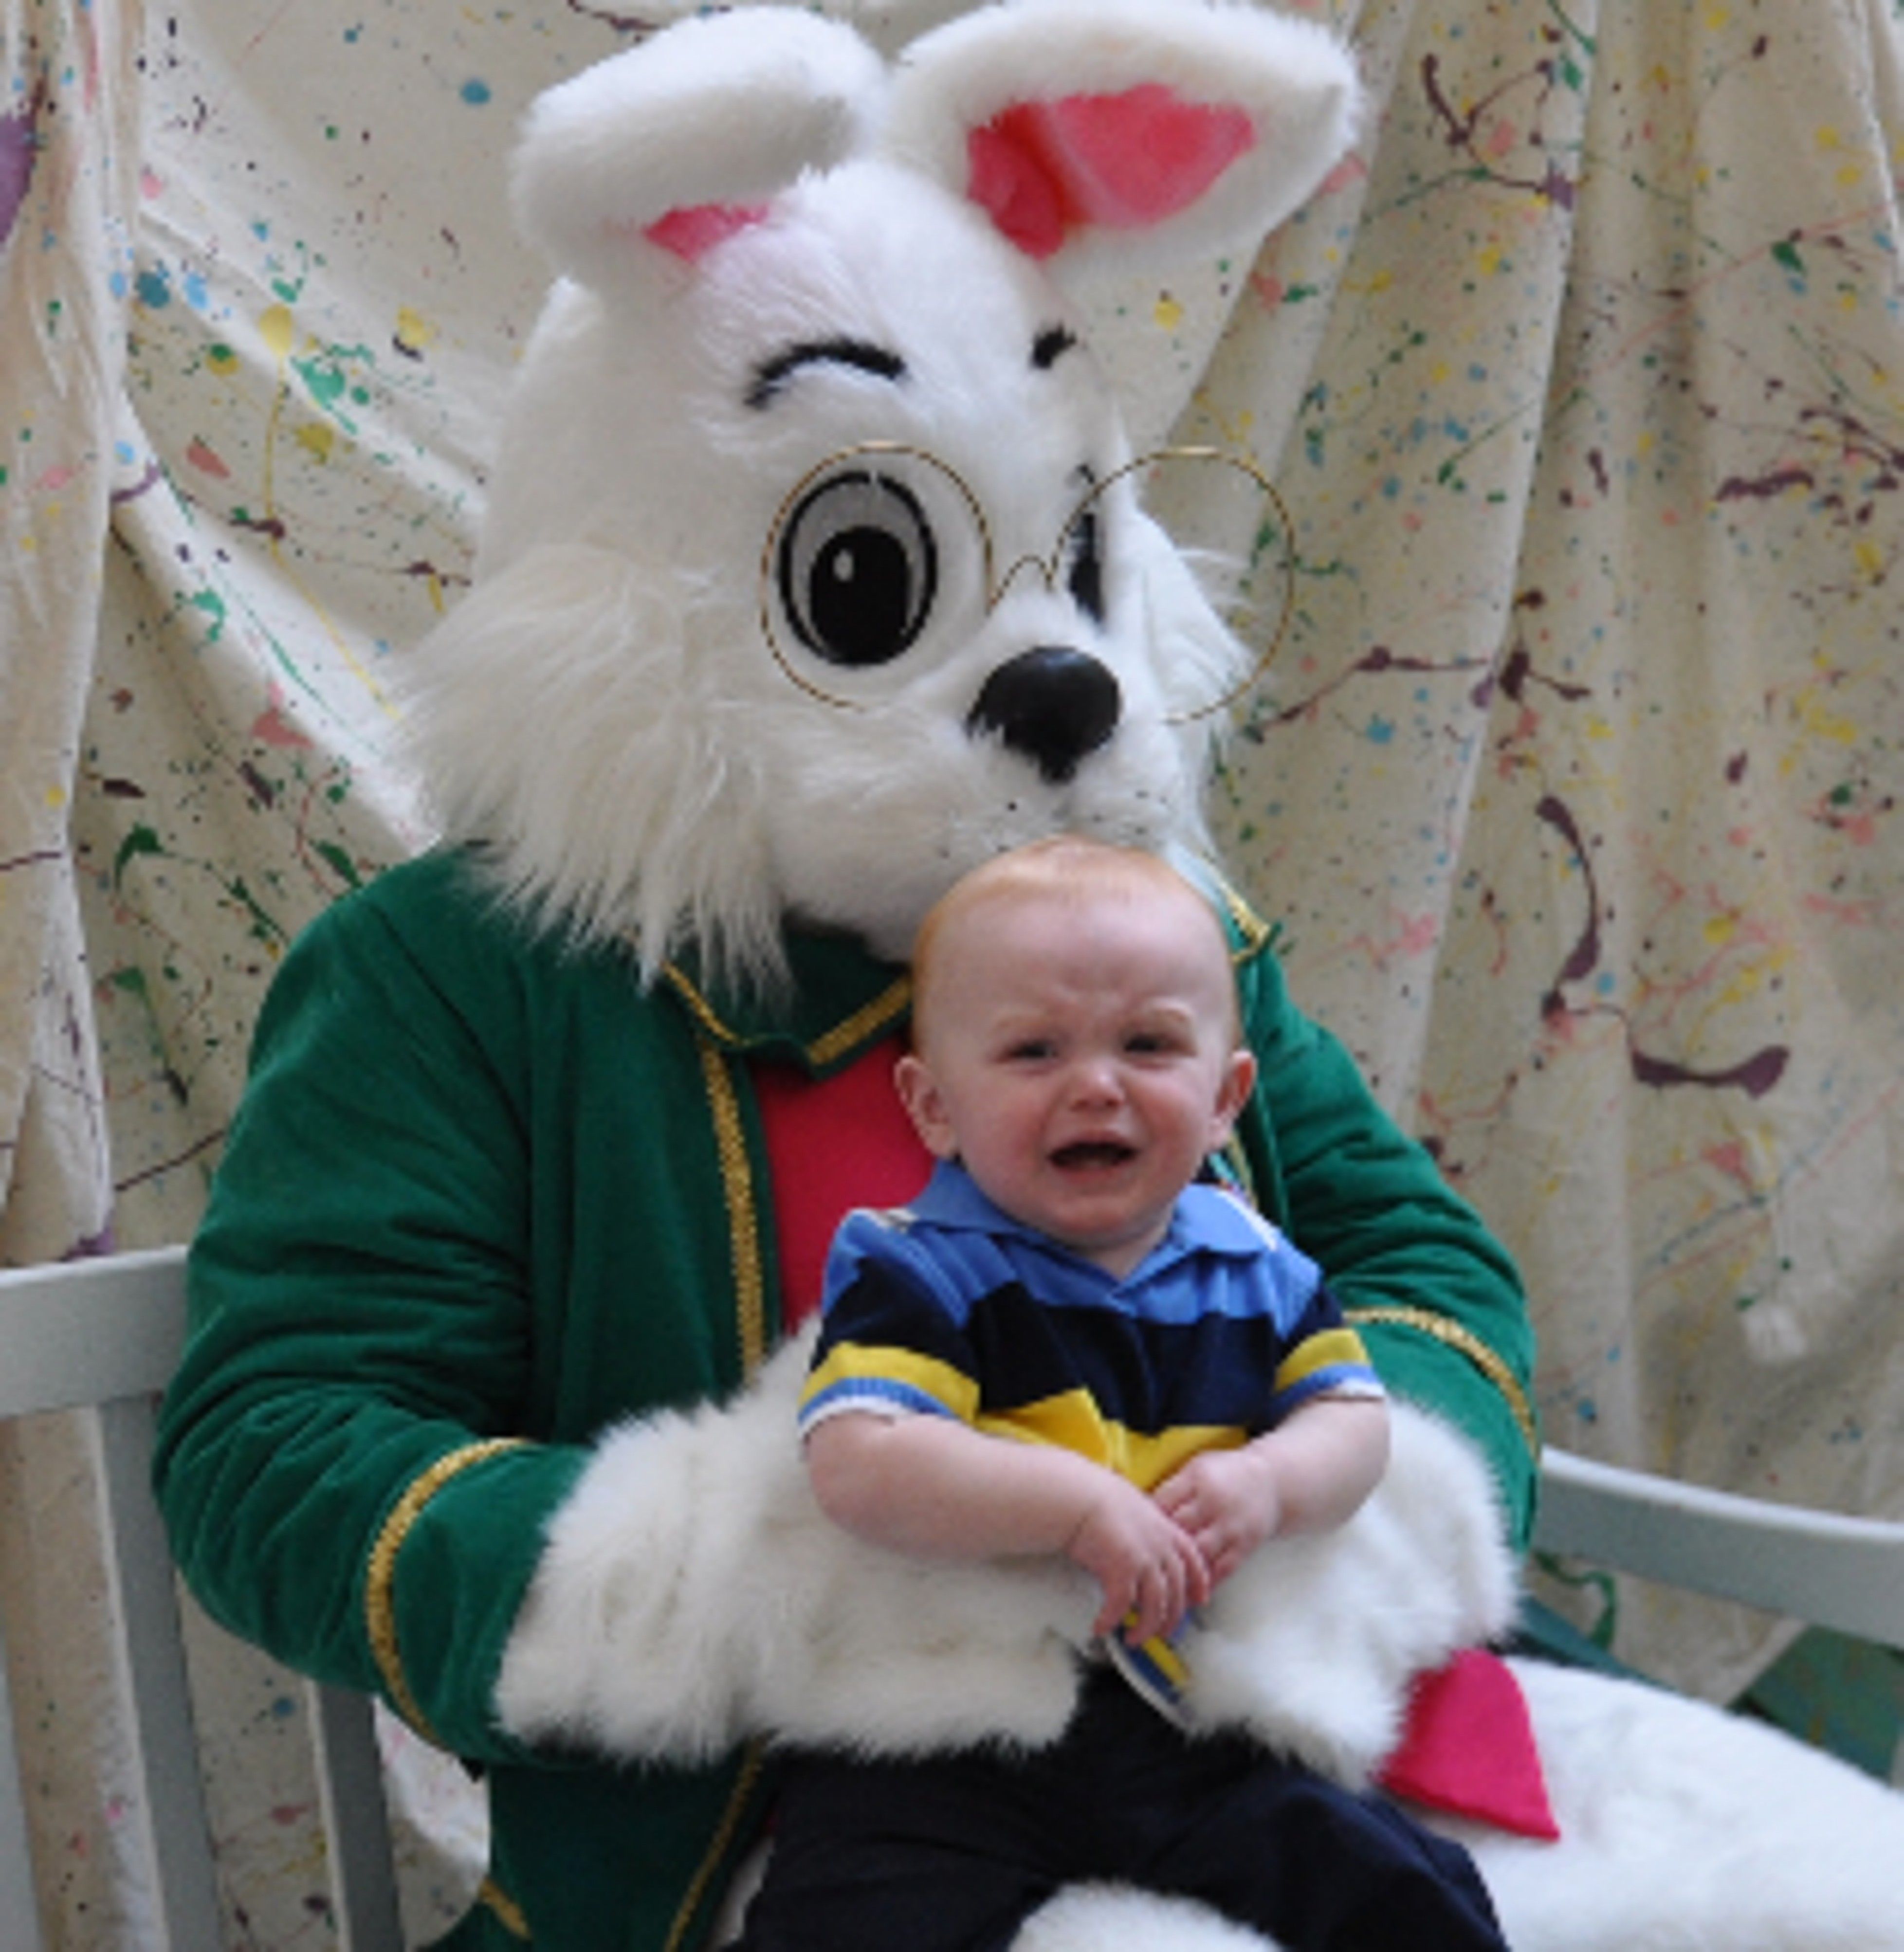 Scary Easter Bunny Photos I gave up taking pictures with